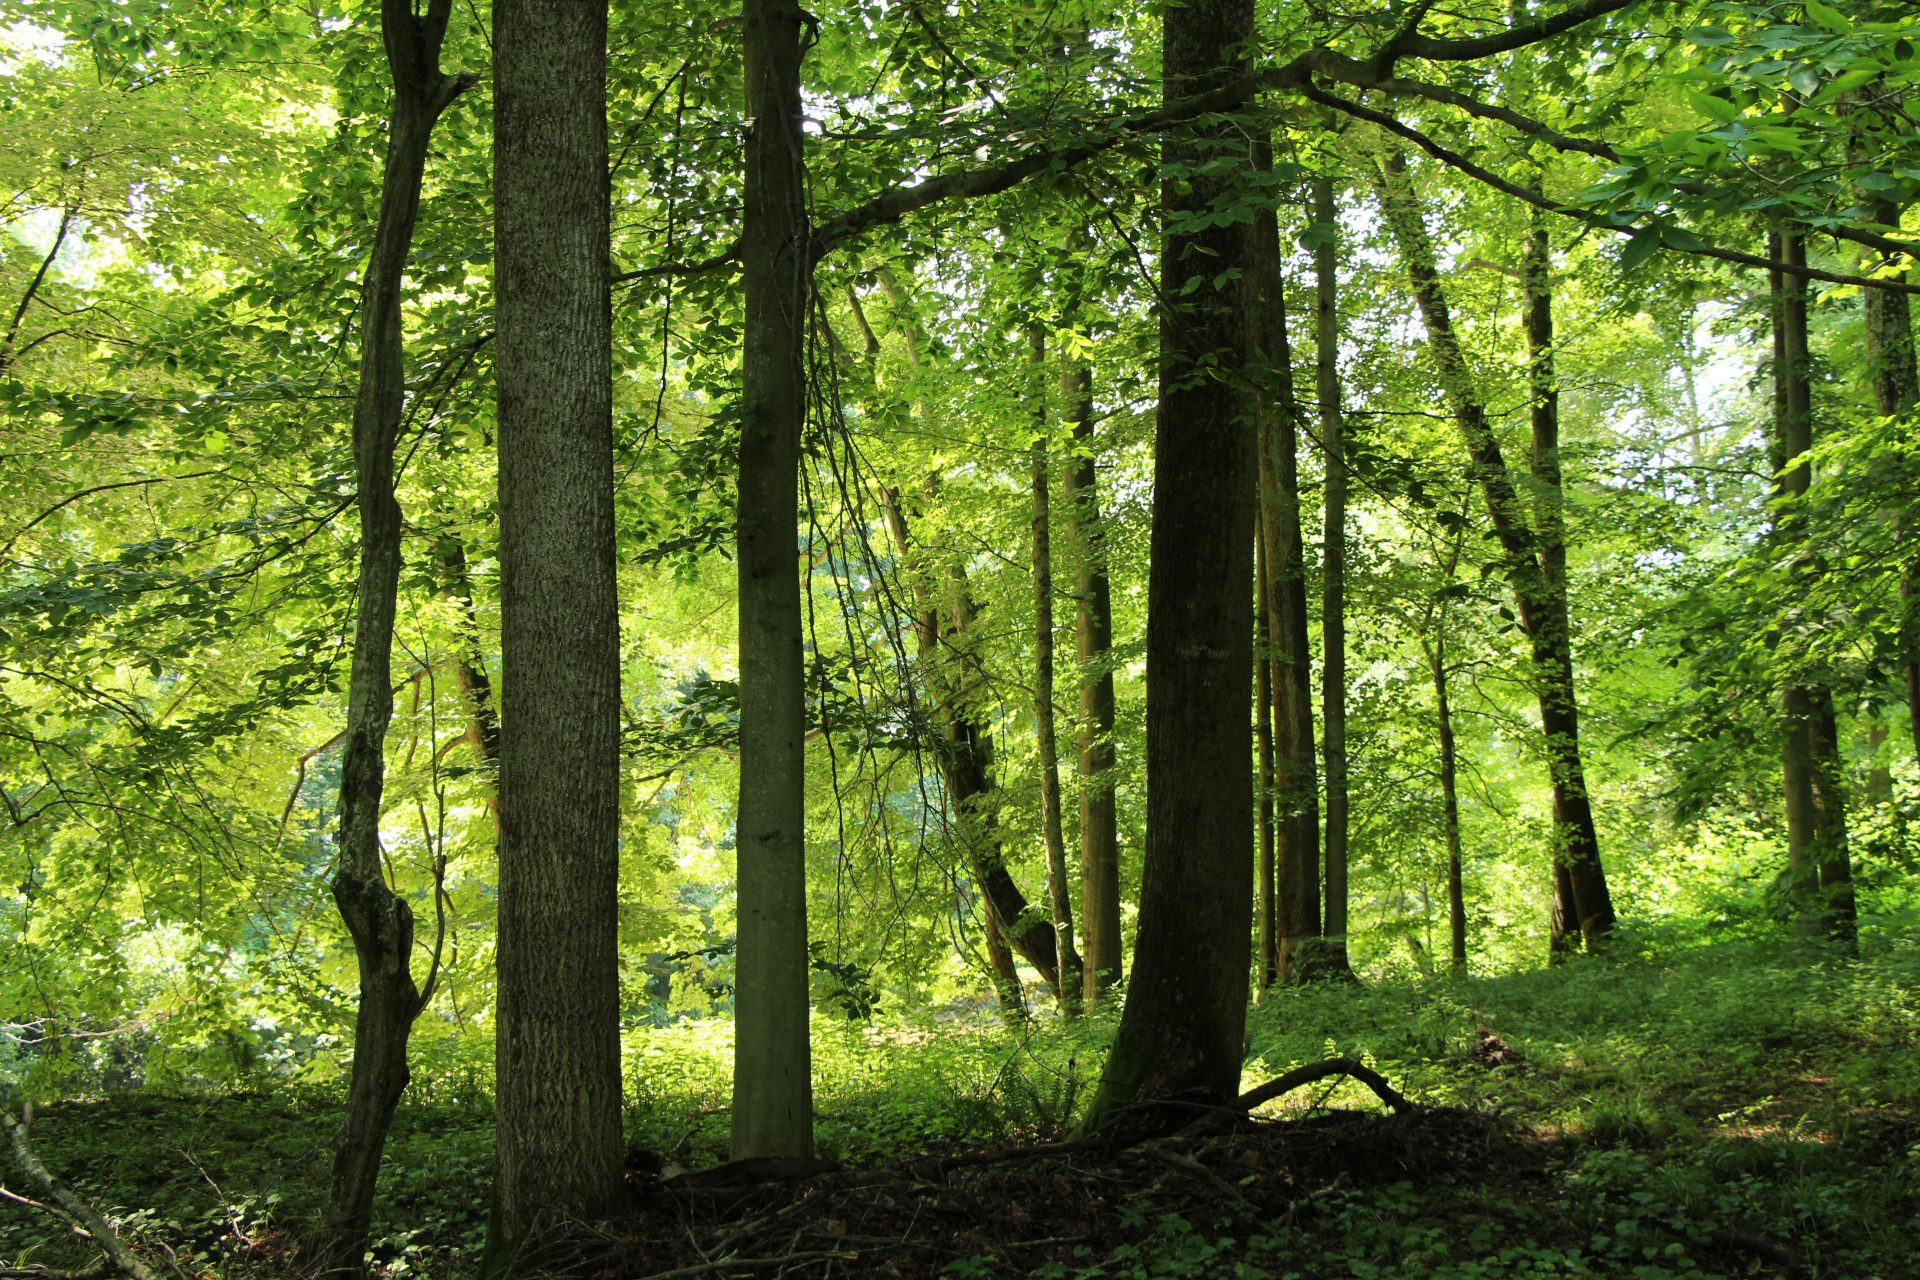 The preserve boasts a high diversity of mature trees, credit for whose protection goes to the Sellers who for multiple generations safeguarded their trees.